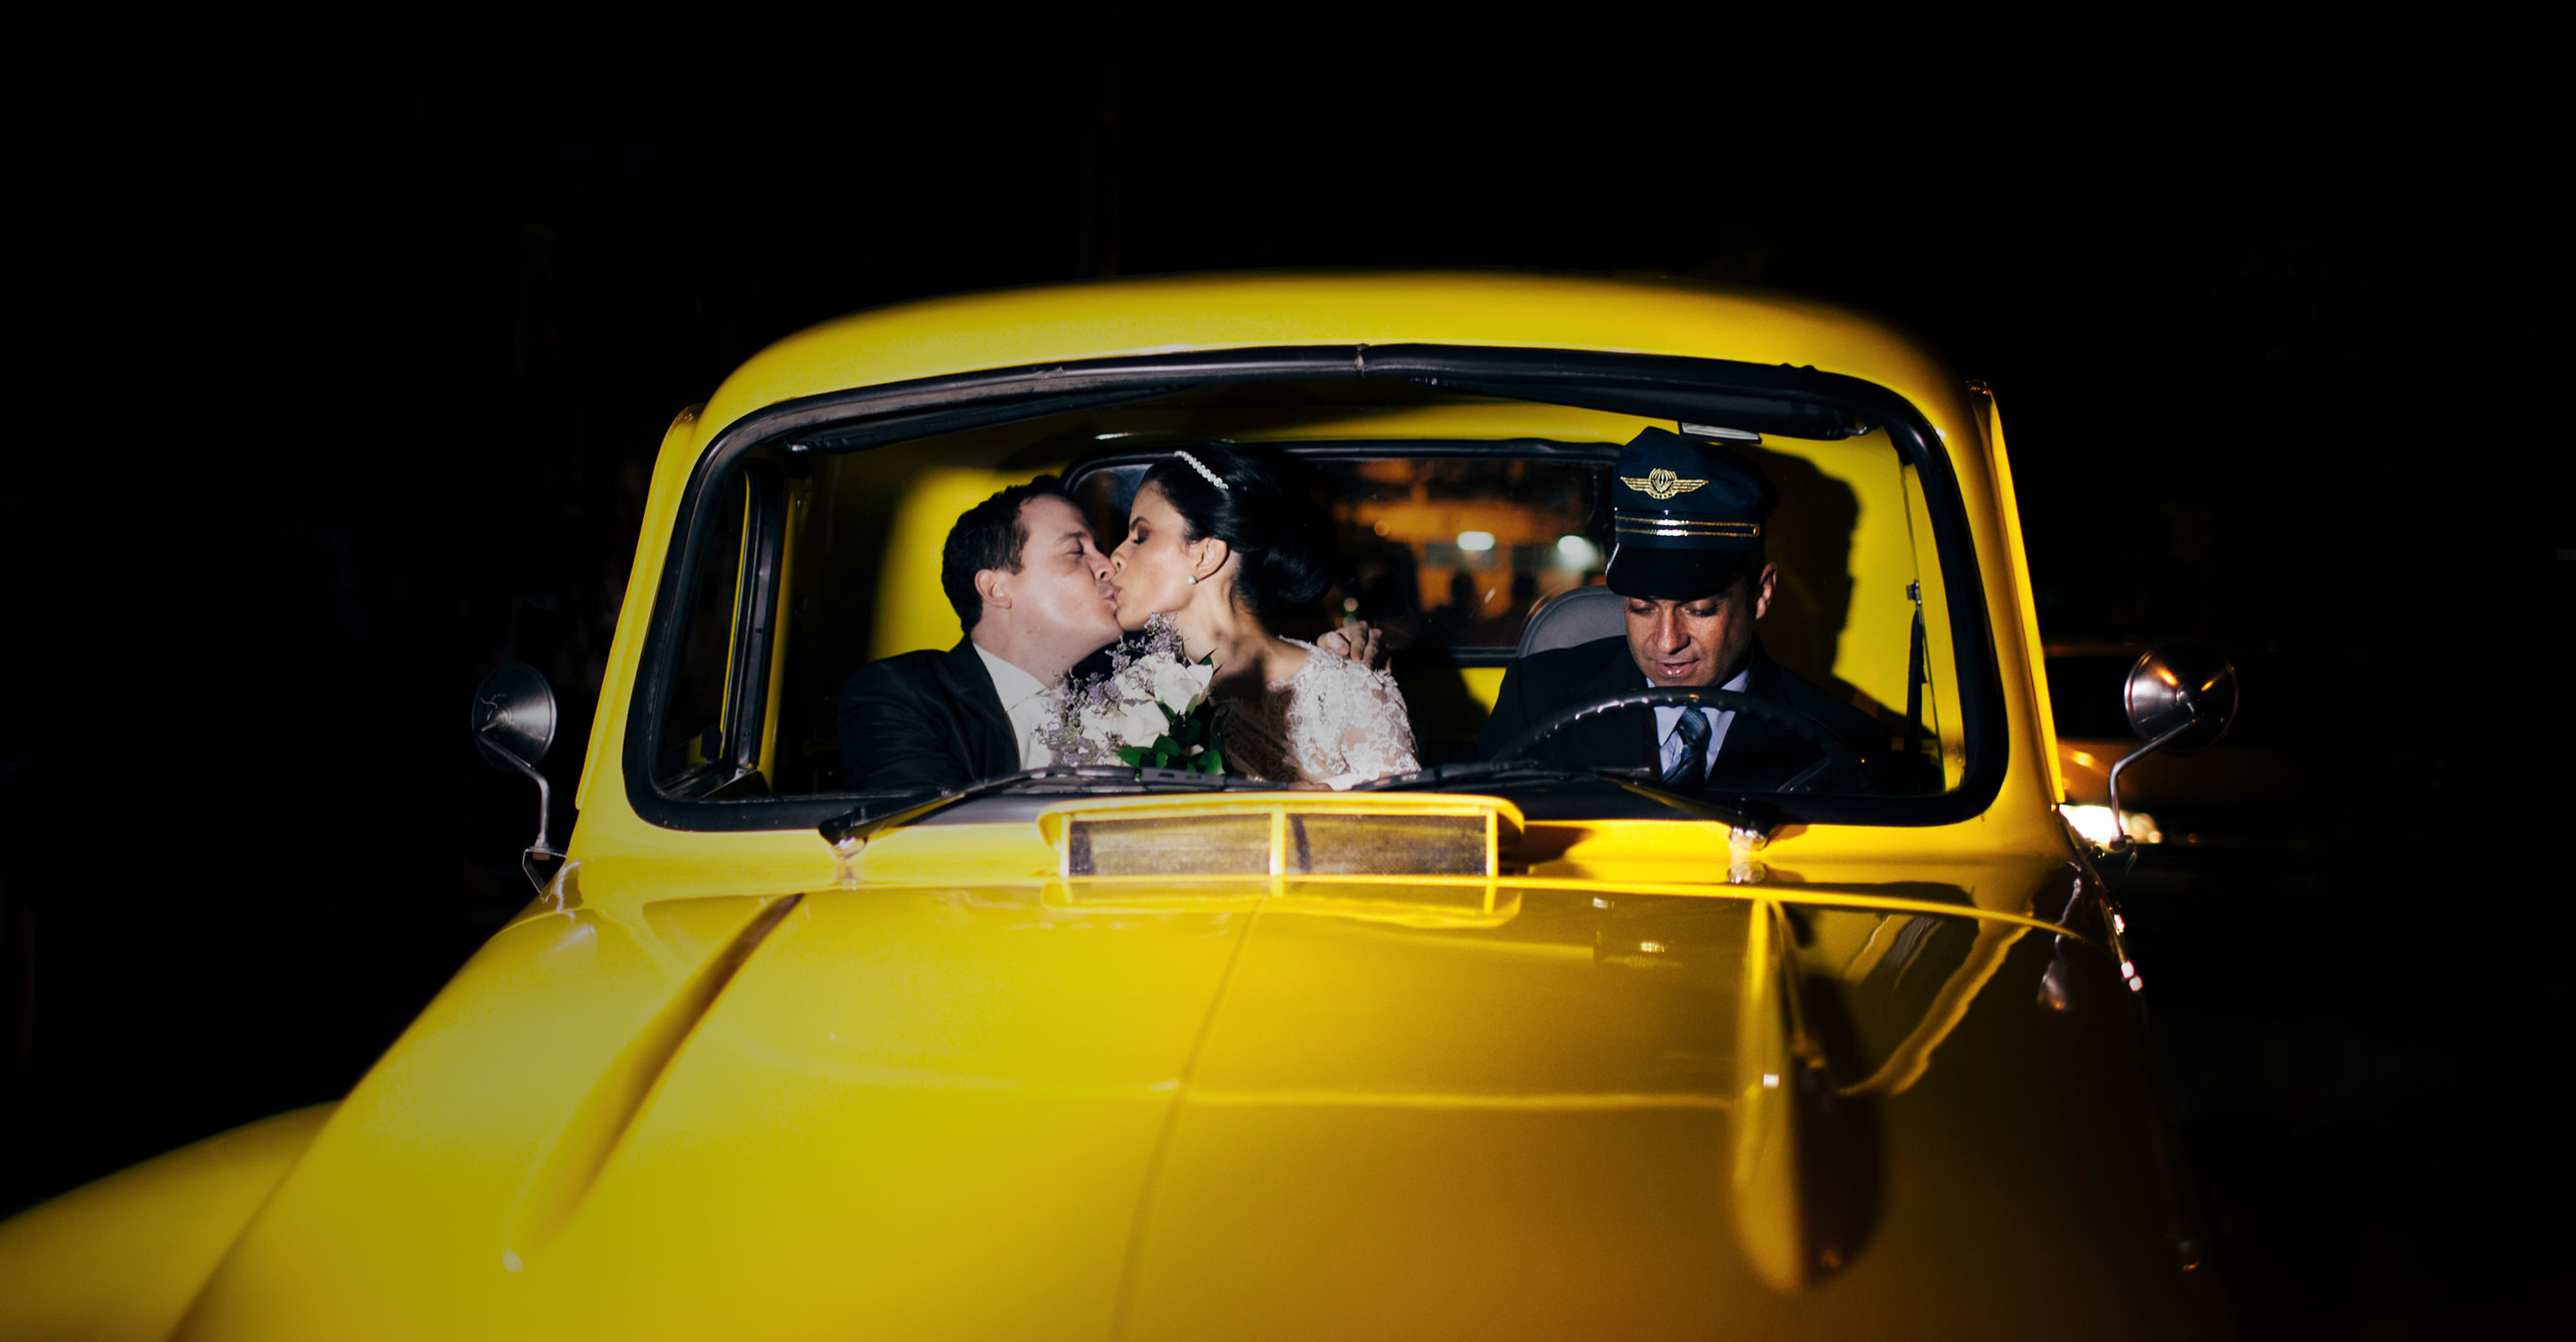 Wedding couple kisses inside a yellow car after the ceremony while the driver is distracted